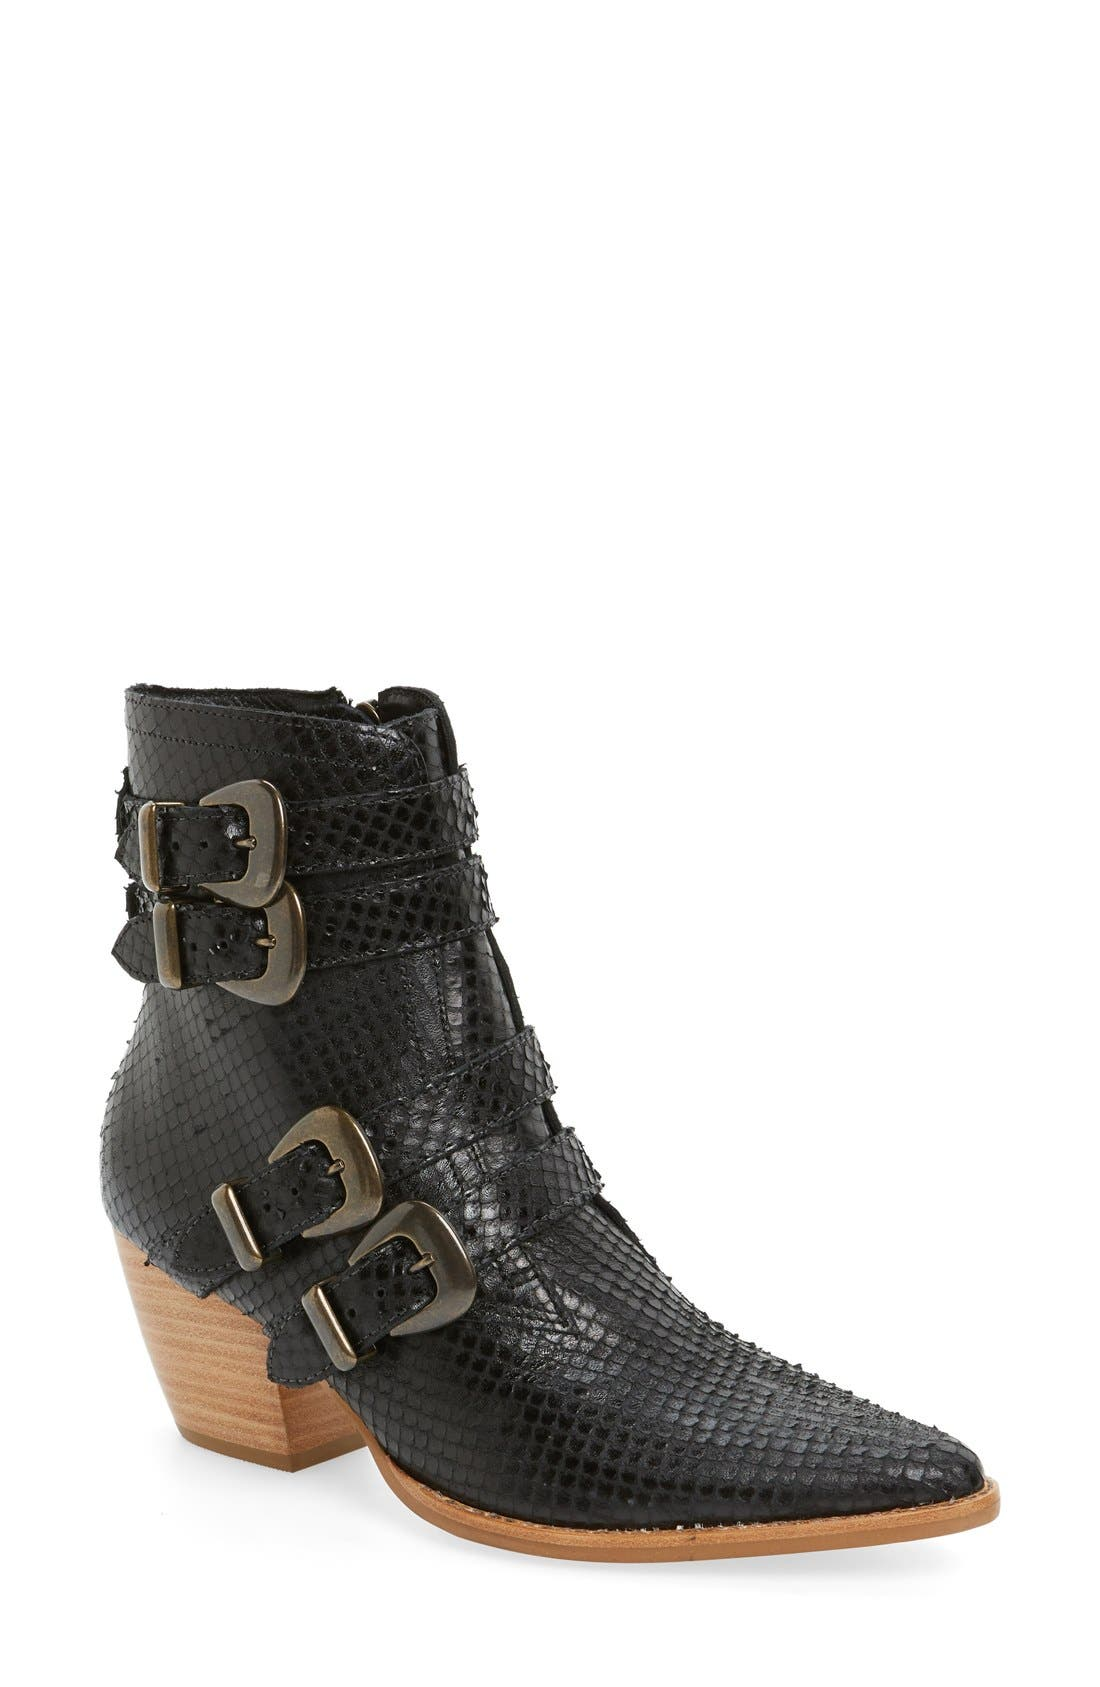 'Harvey' Embossed Buckle Boot,                             Main thumbnail 1, color,                             001